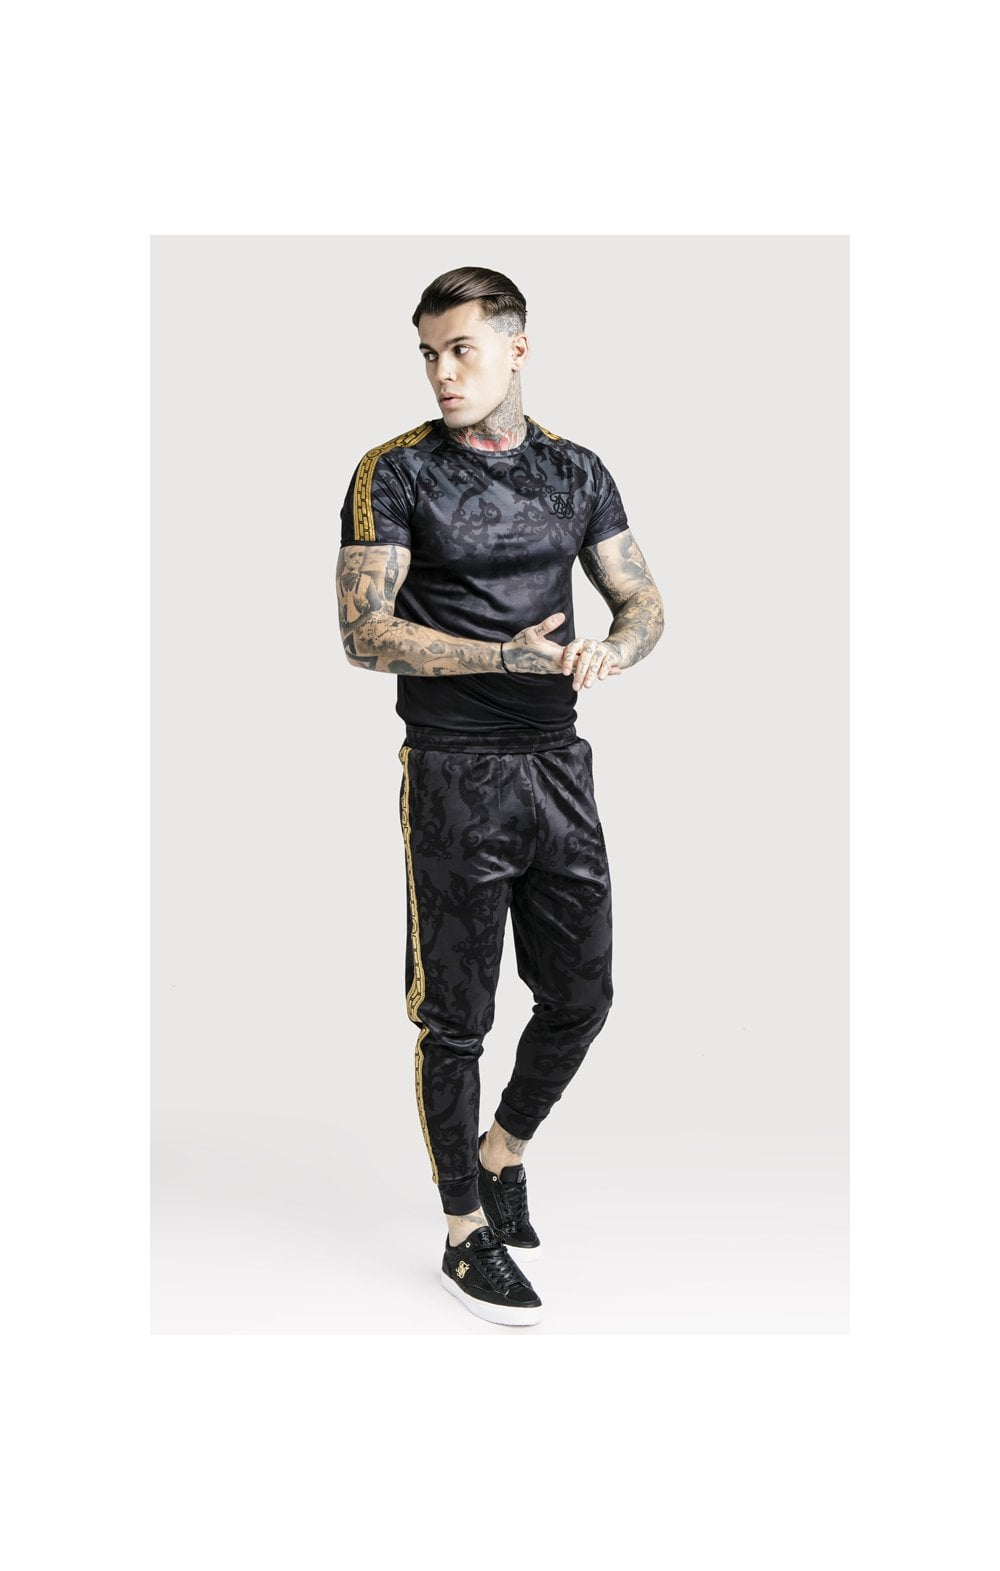 Load image into Gallery viewer, SikSilk x Dani Alves Taped Gym Tee - Black (3)